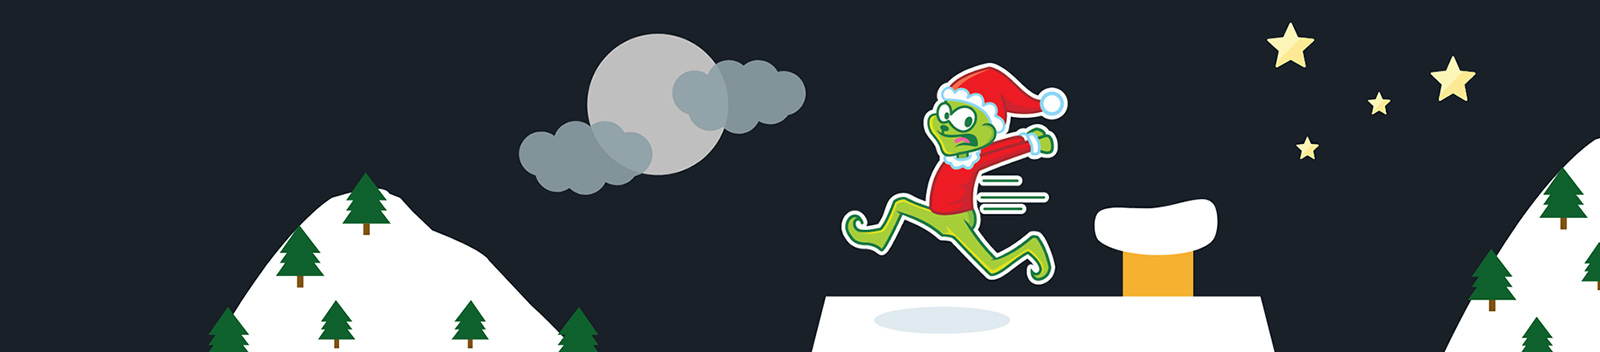 How to protect your business against the Grinch this holiday season